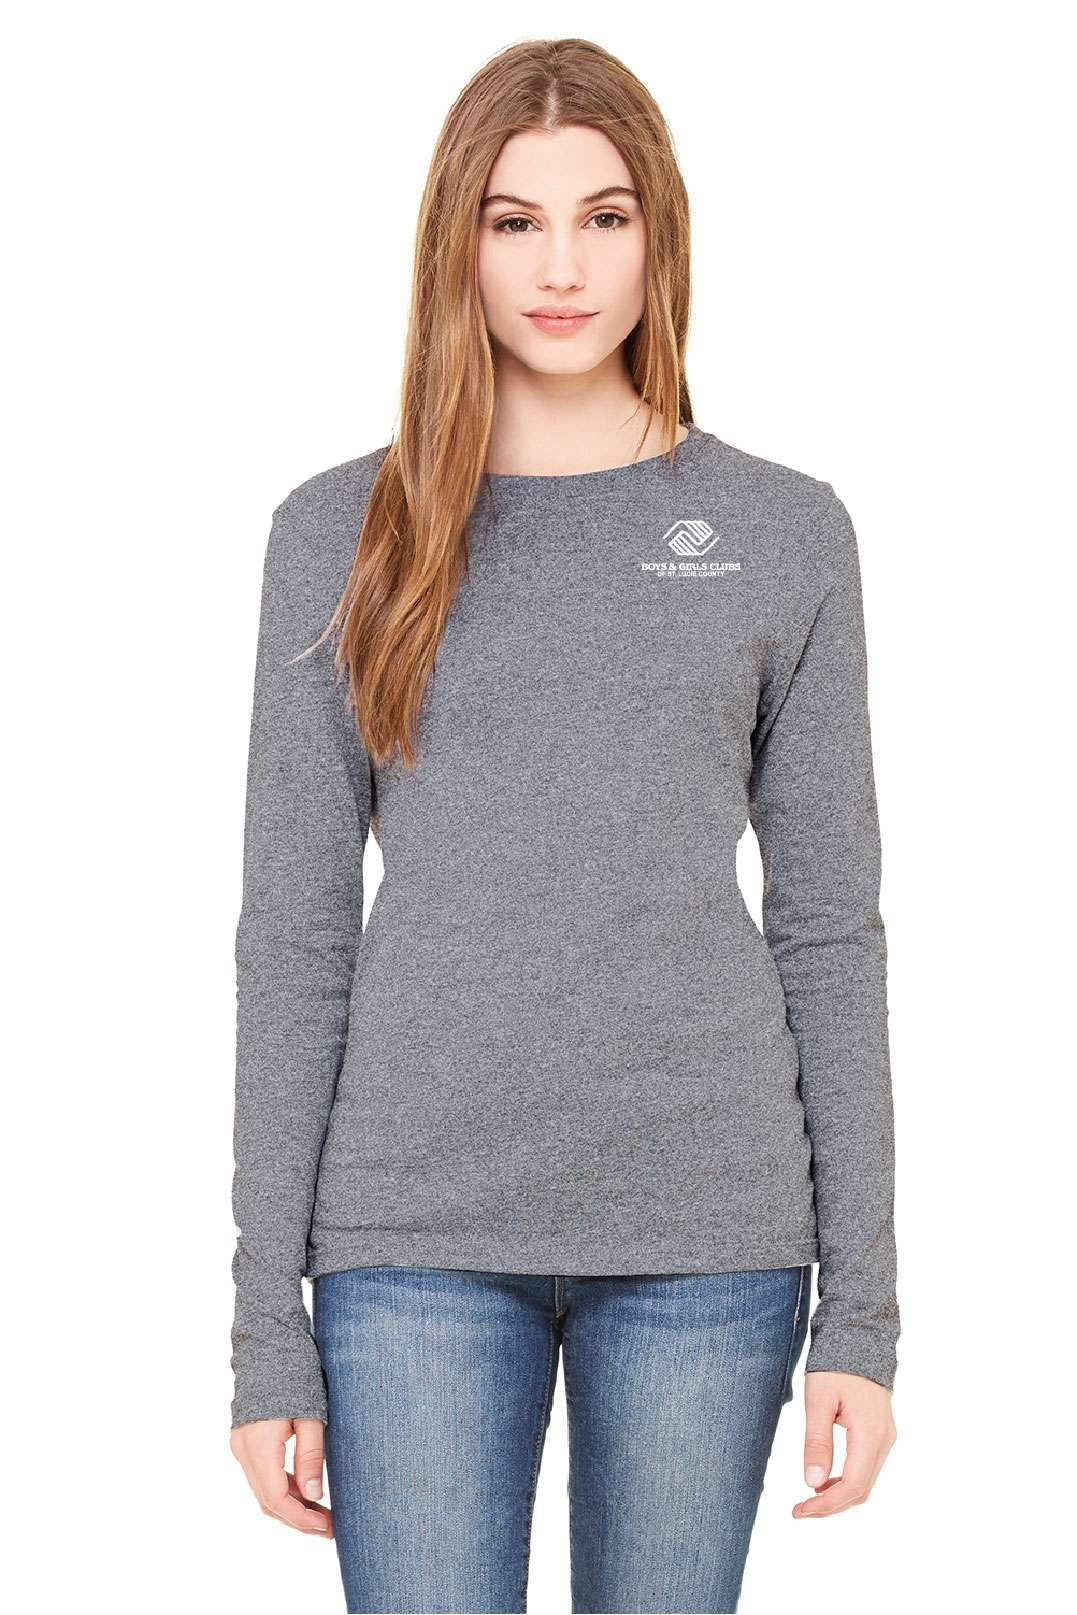 BGC-B6500 BELLA+CANVAS Ladies' Jersey Long-Sleeve T-Shirt